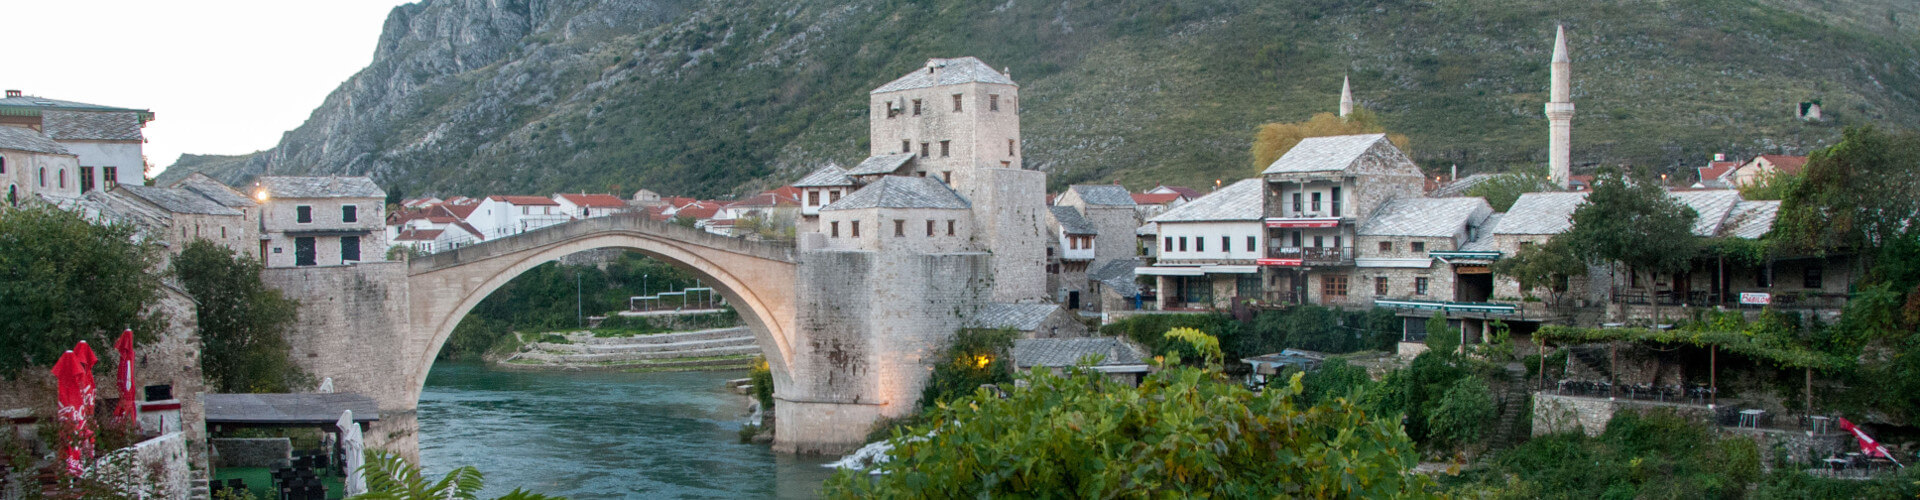 Bosnia Mostar bridge 1